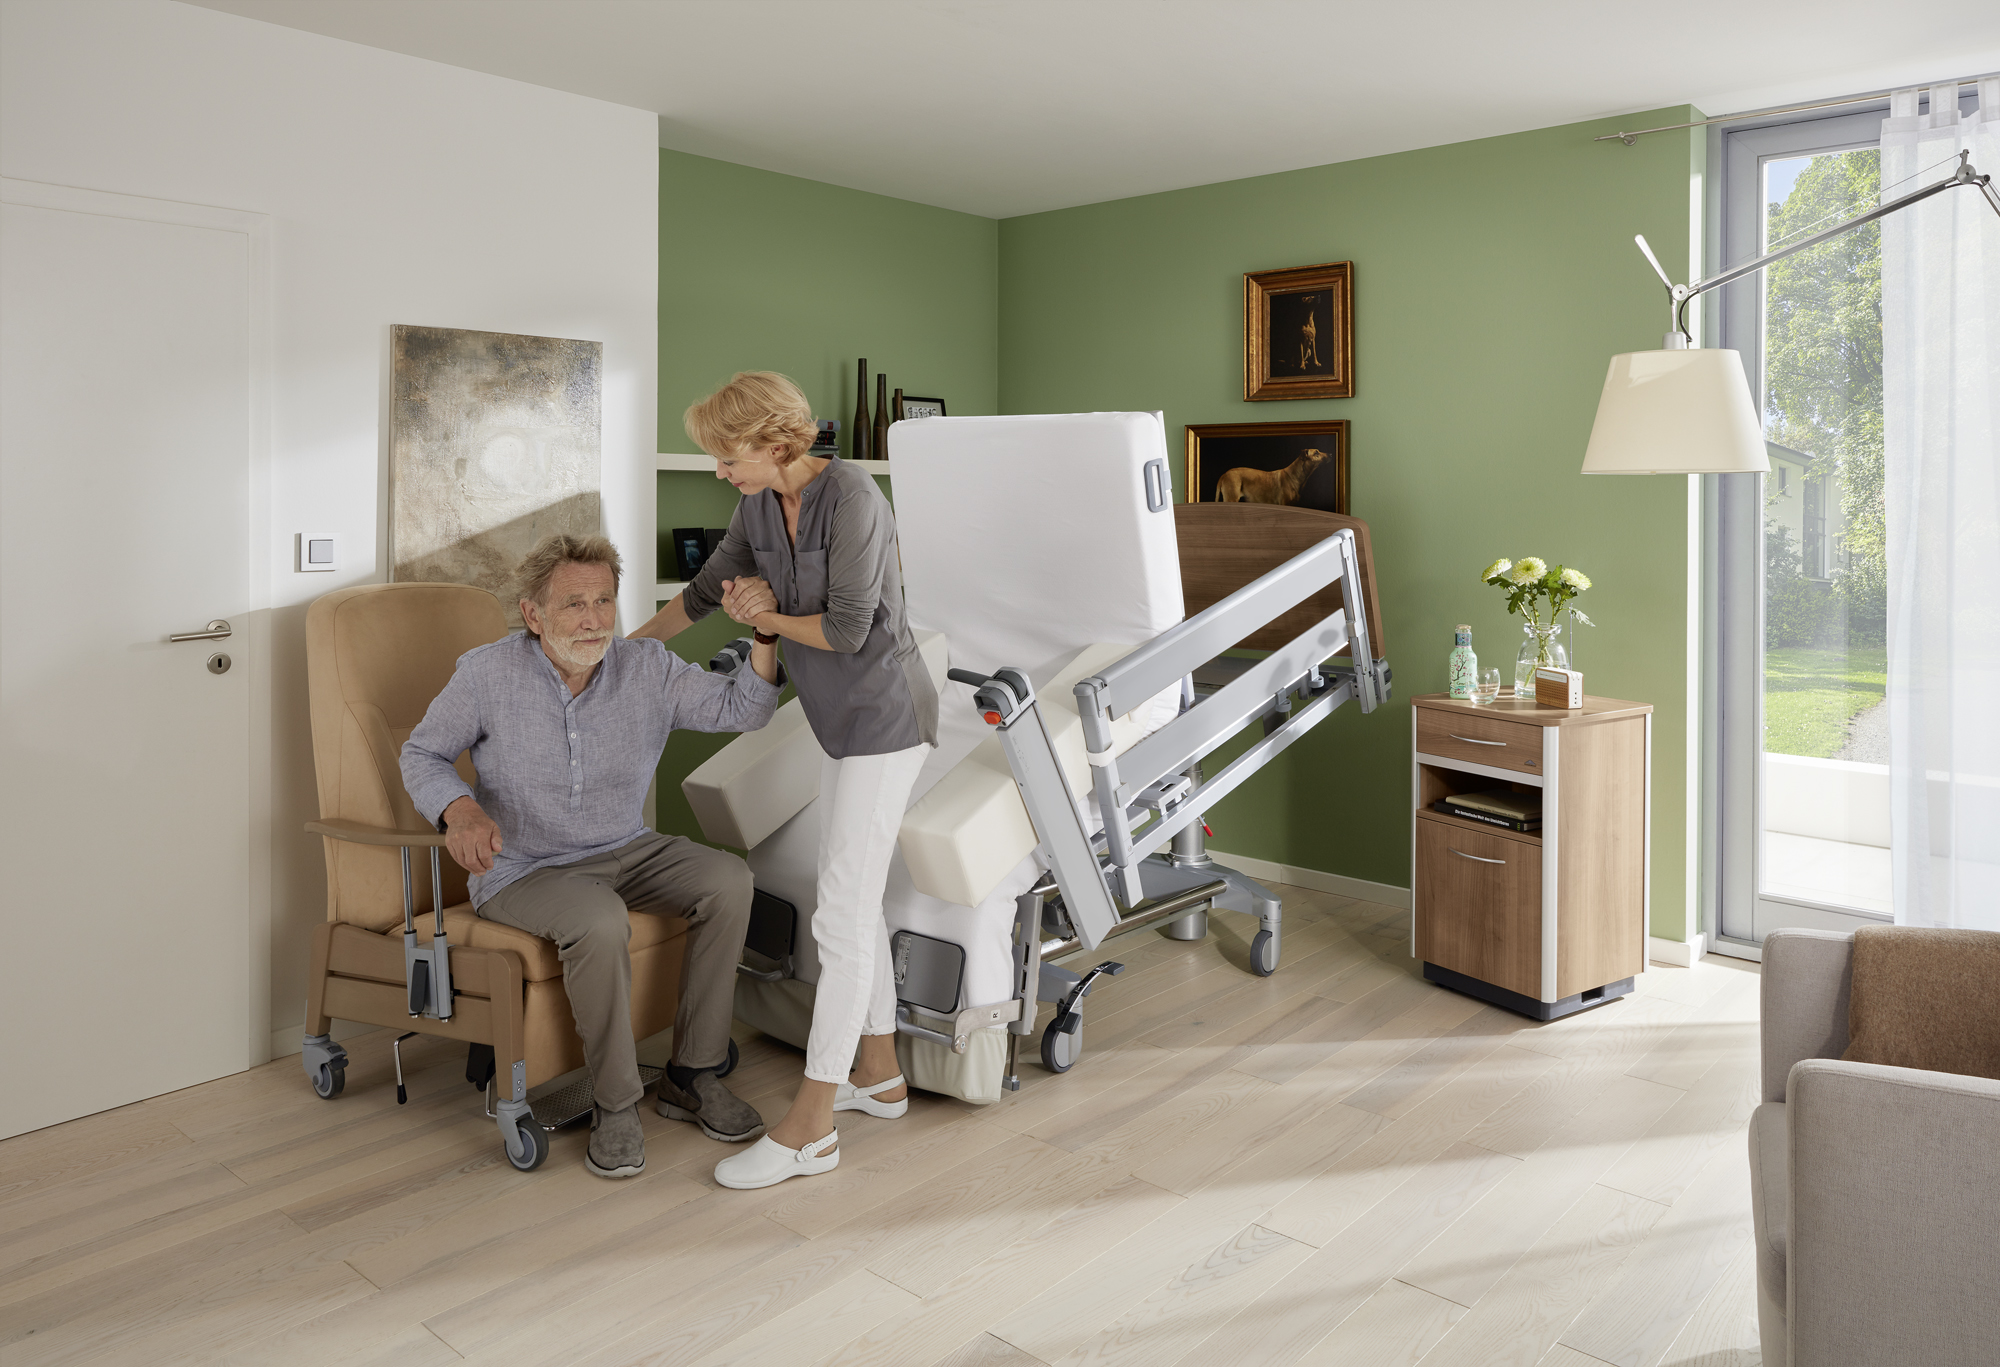 Easy transfer from the Vertica care mobilisation bed